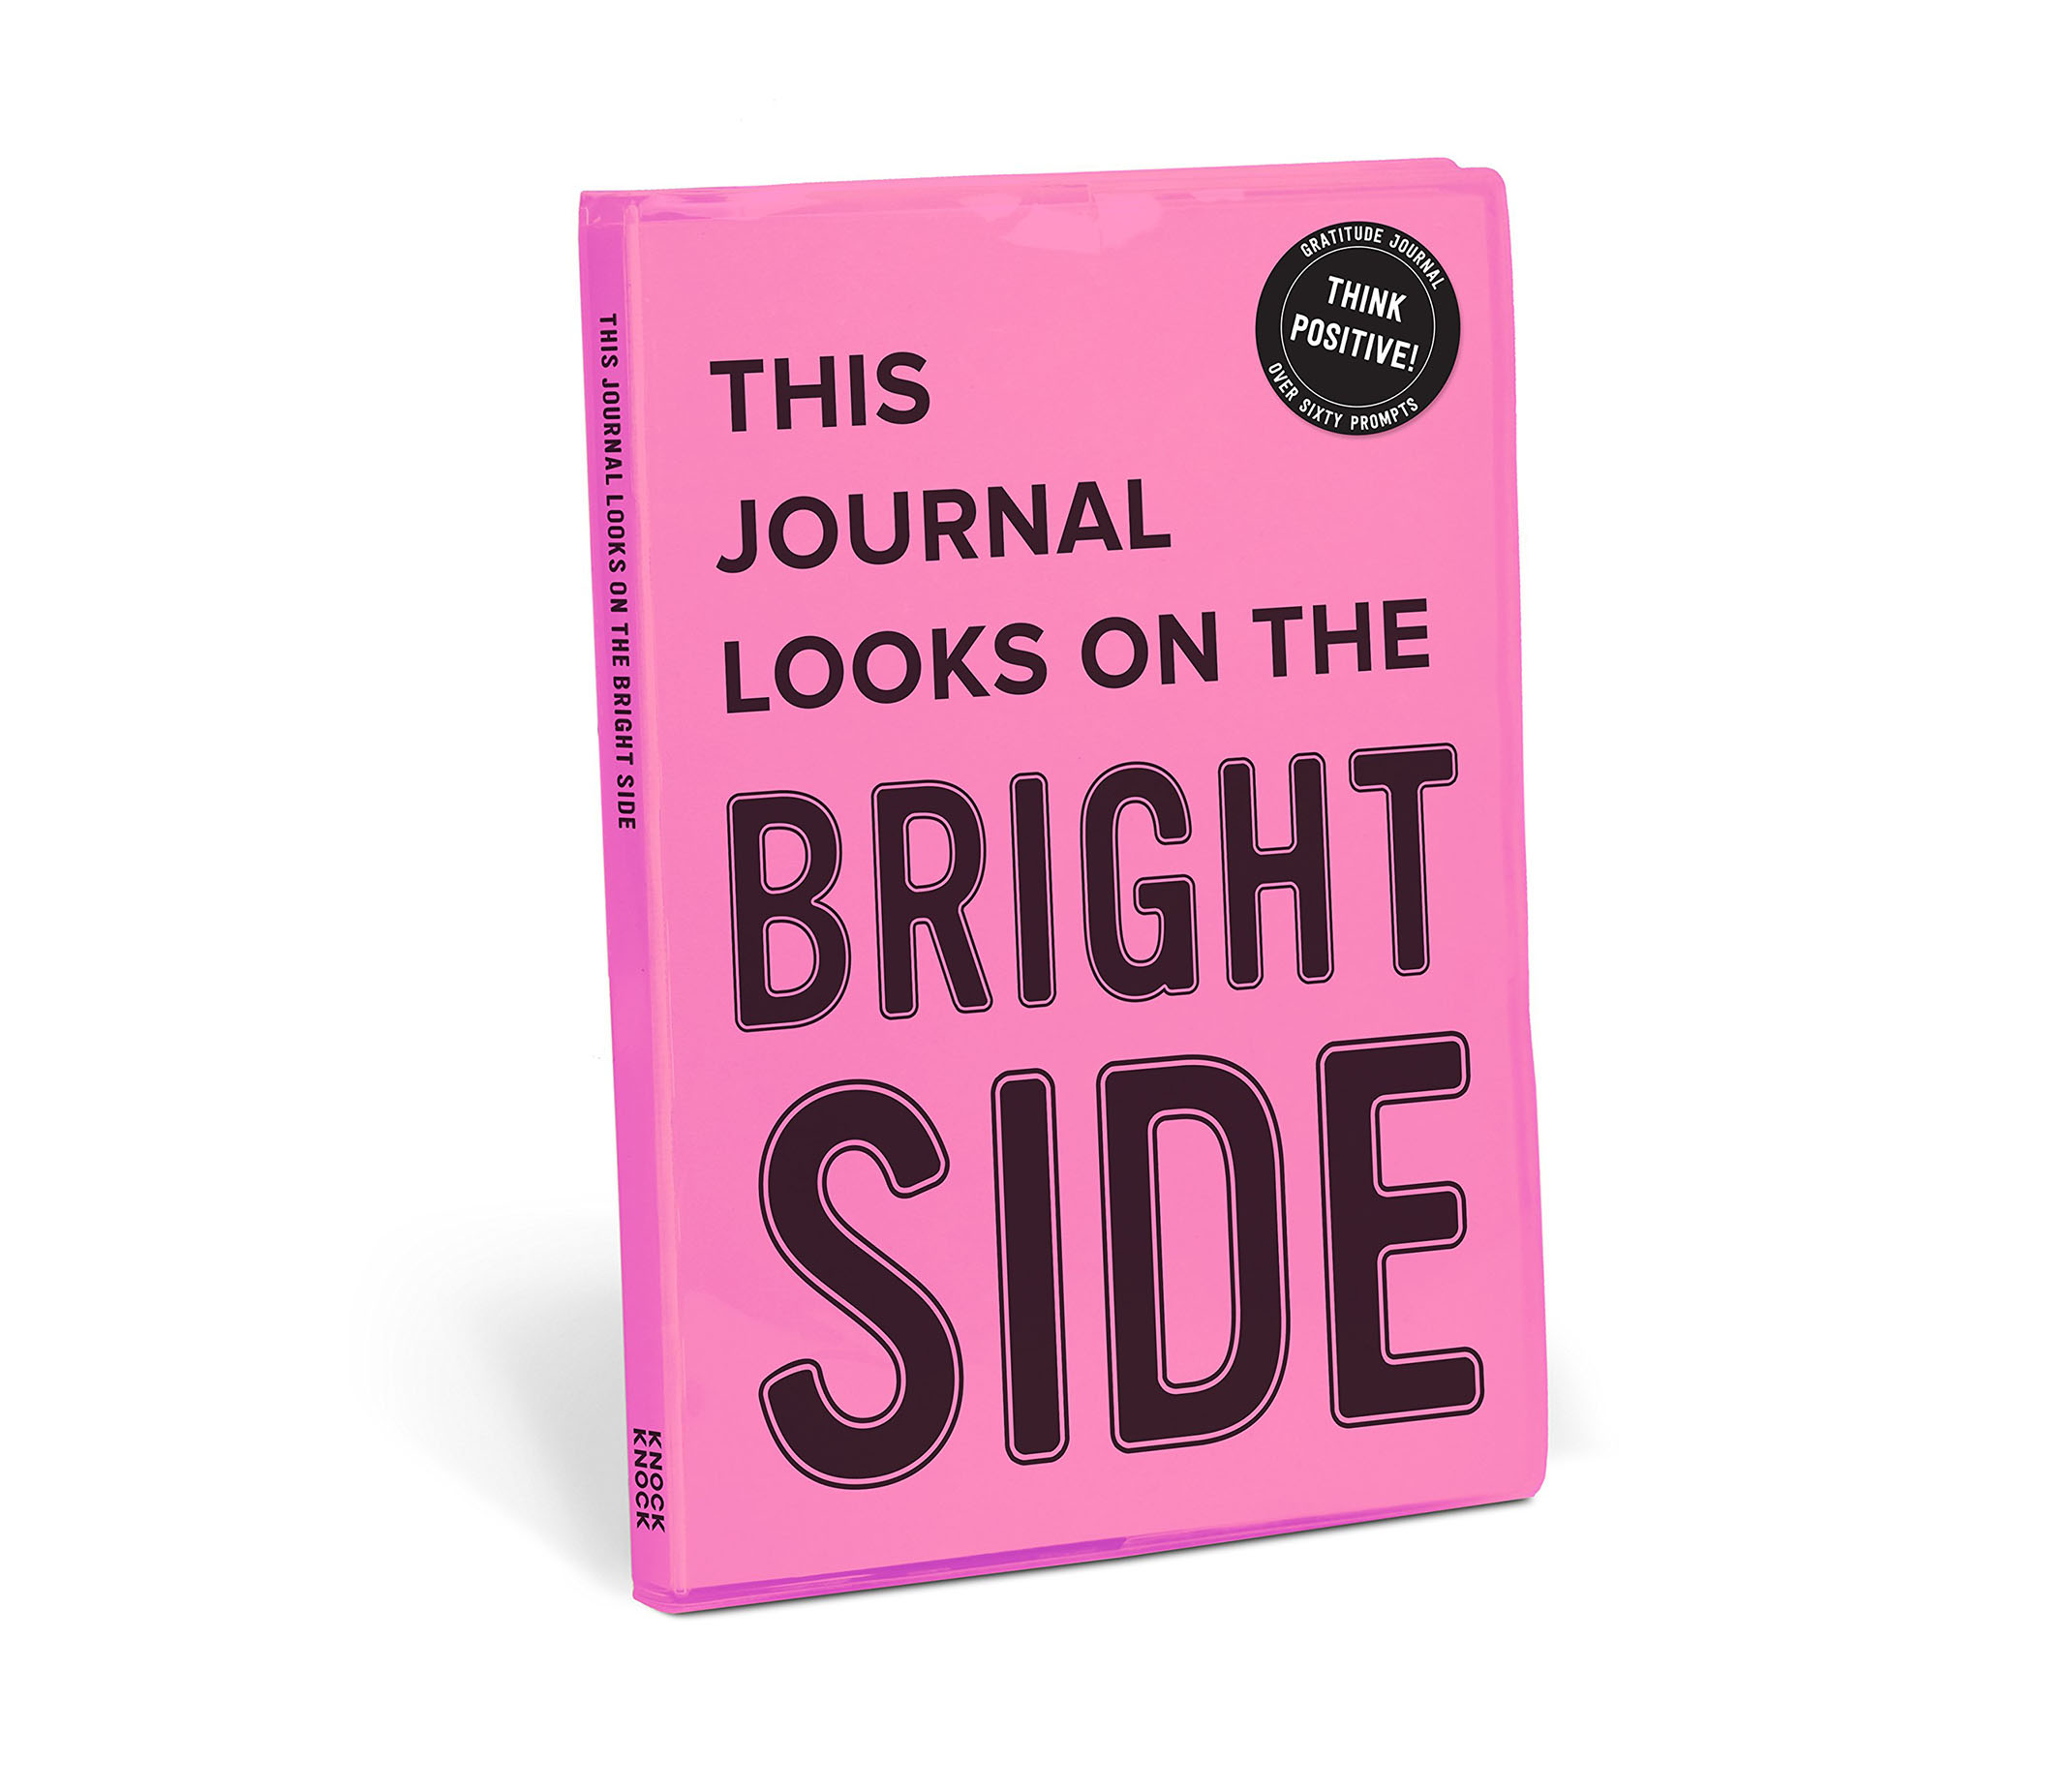 "A light pink journal titled,""This Journal looks on the bright side""."